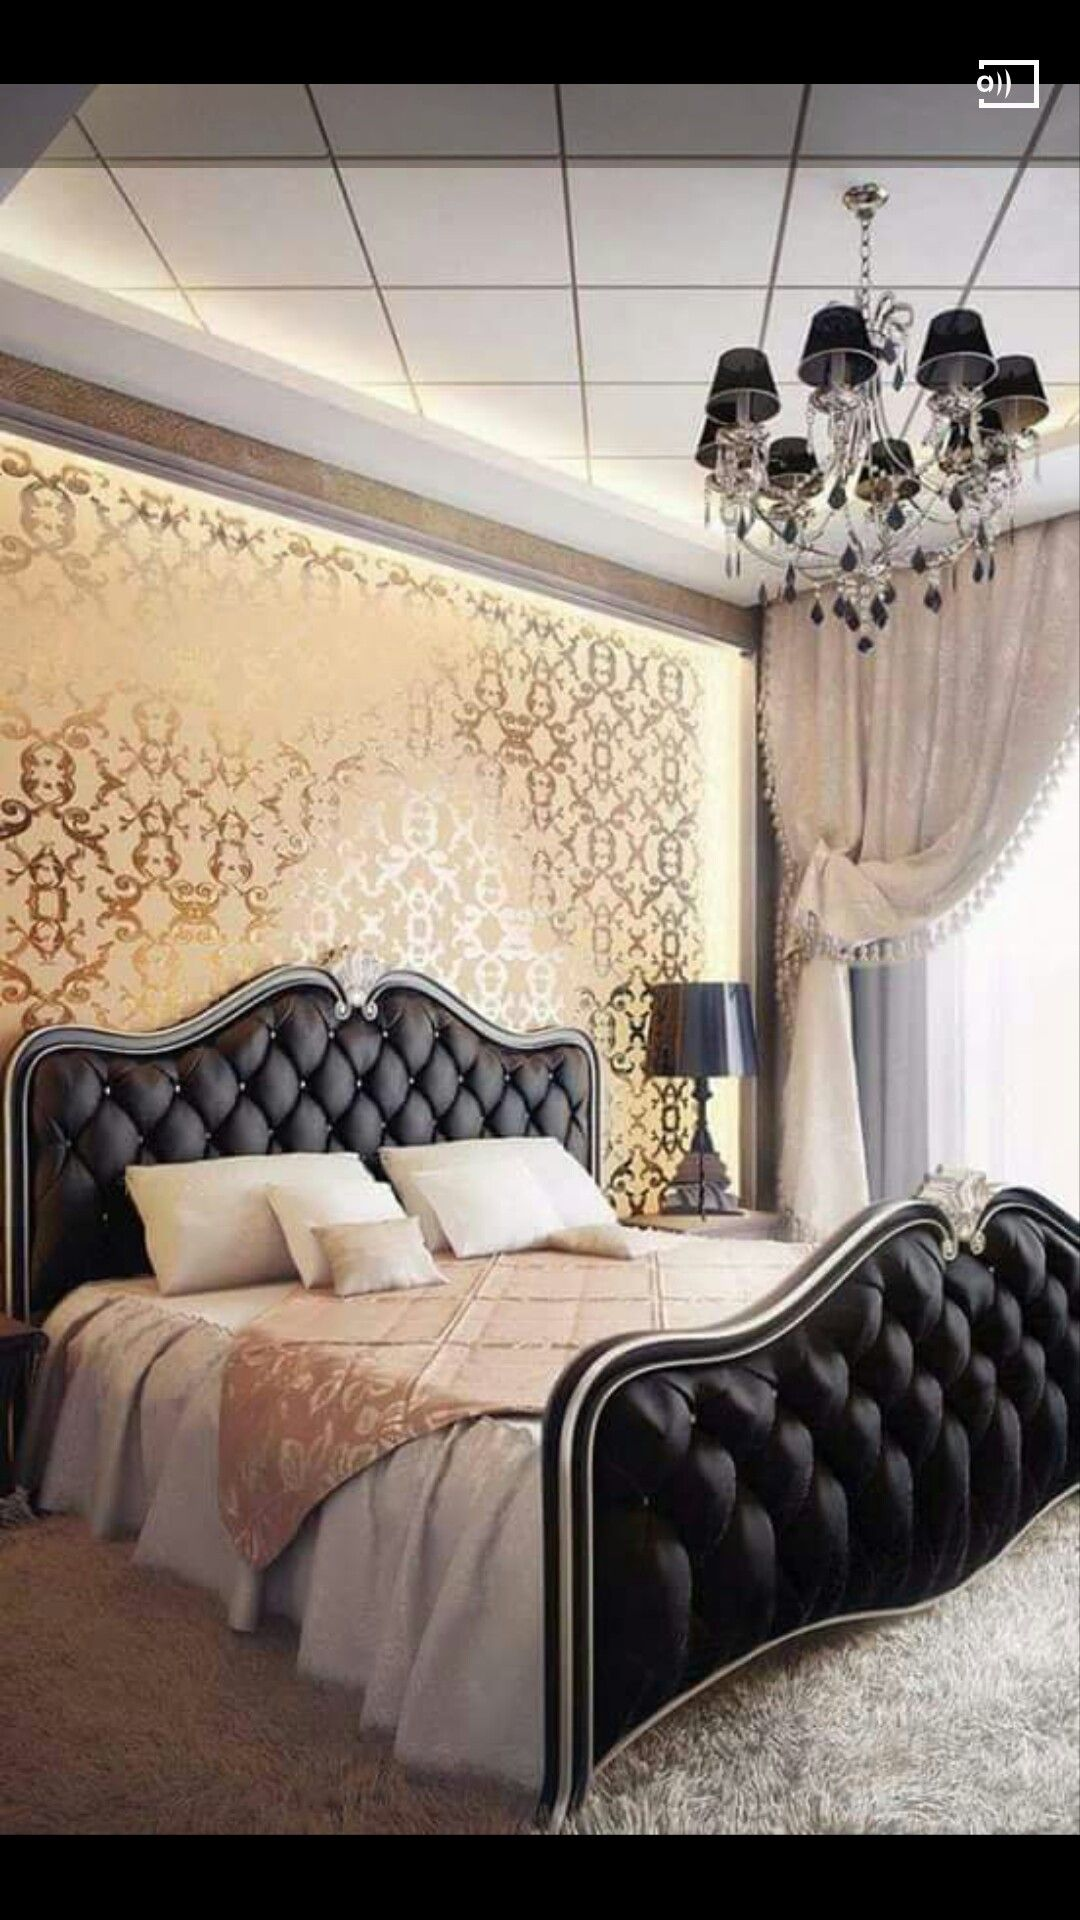 Most Romantic Bedroom Decor: Luxurious Bedrooms, Romantic